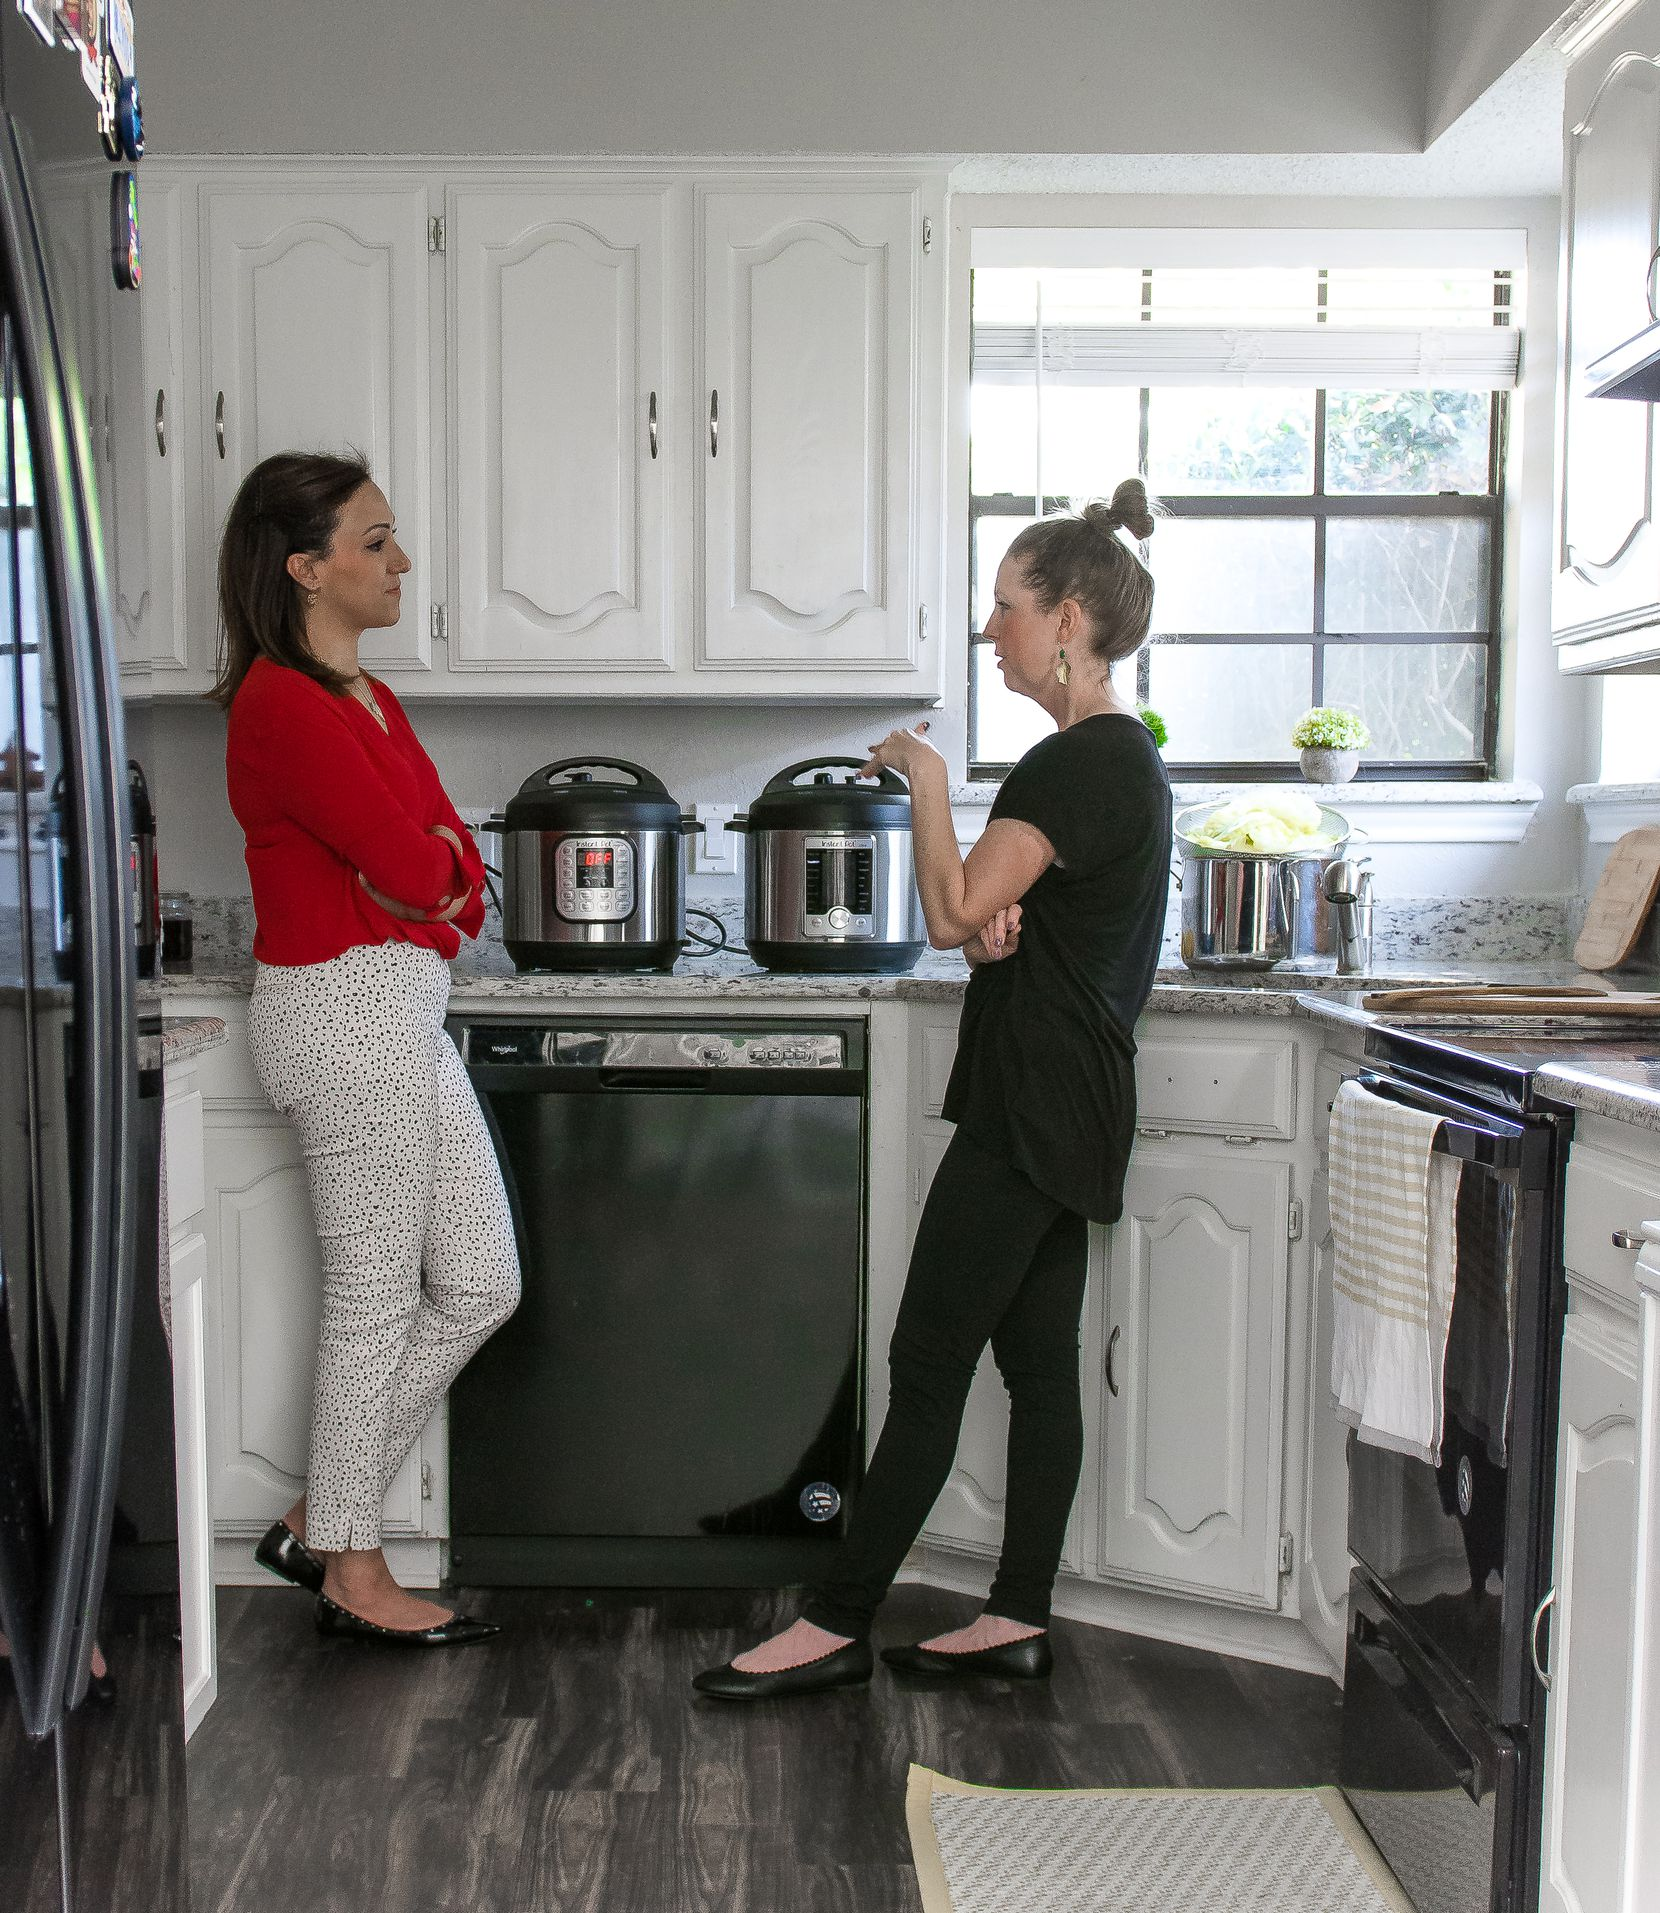 Tamara Abuomar and author Rebecca White chat while cooking in Tamara's Plano home.